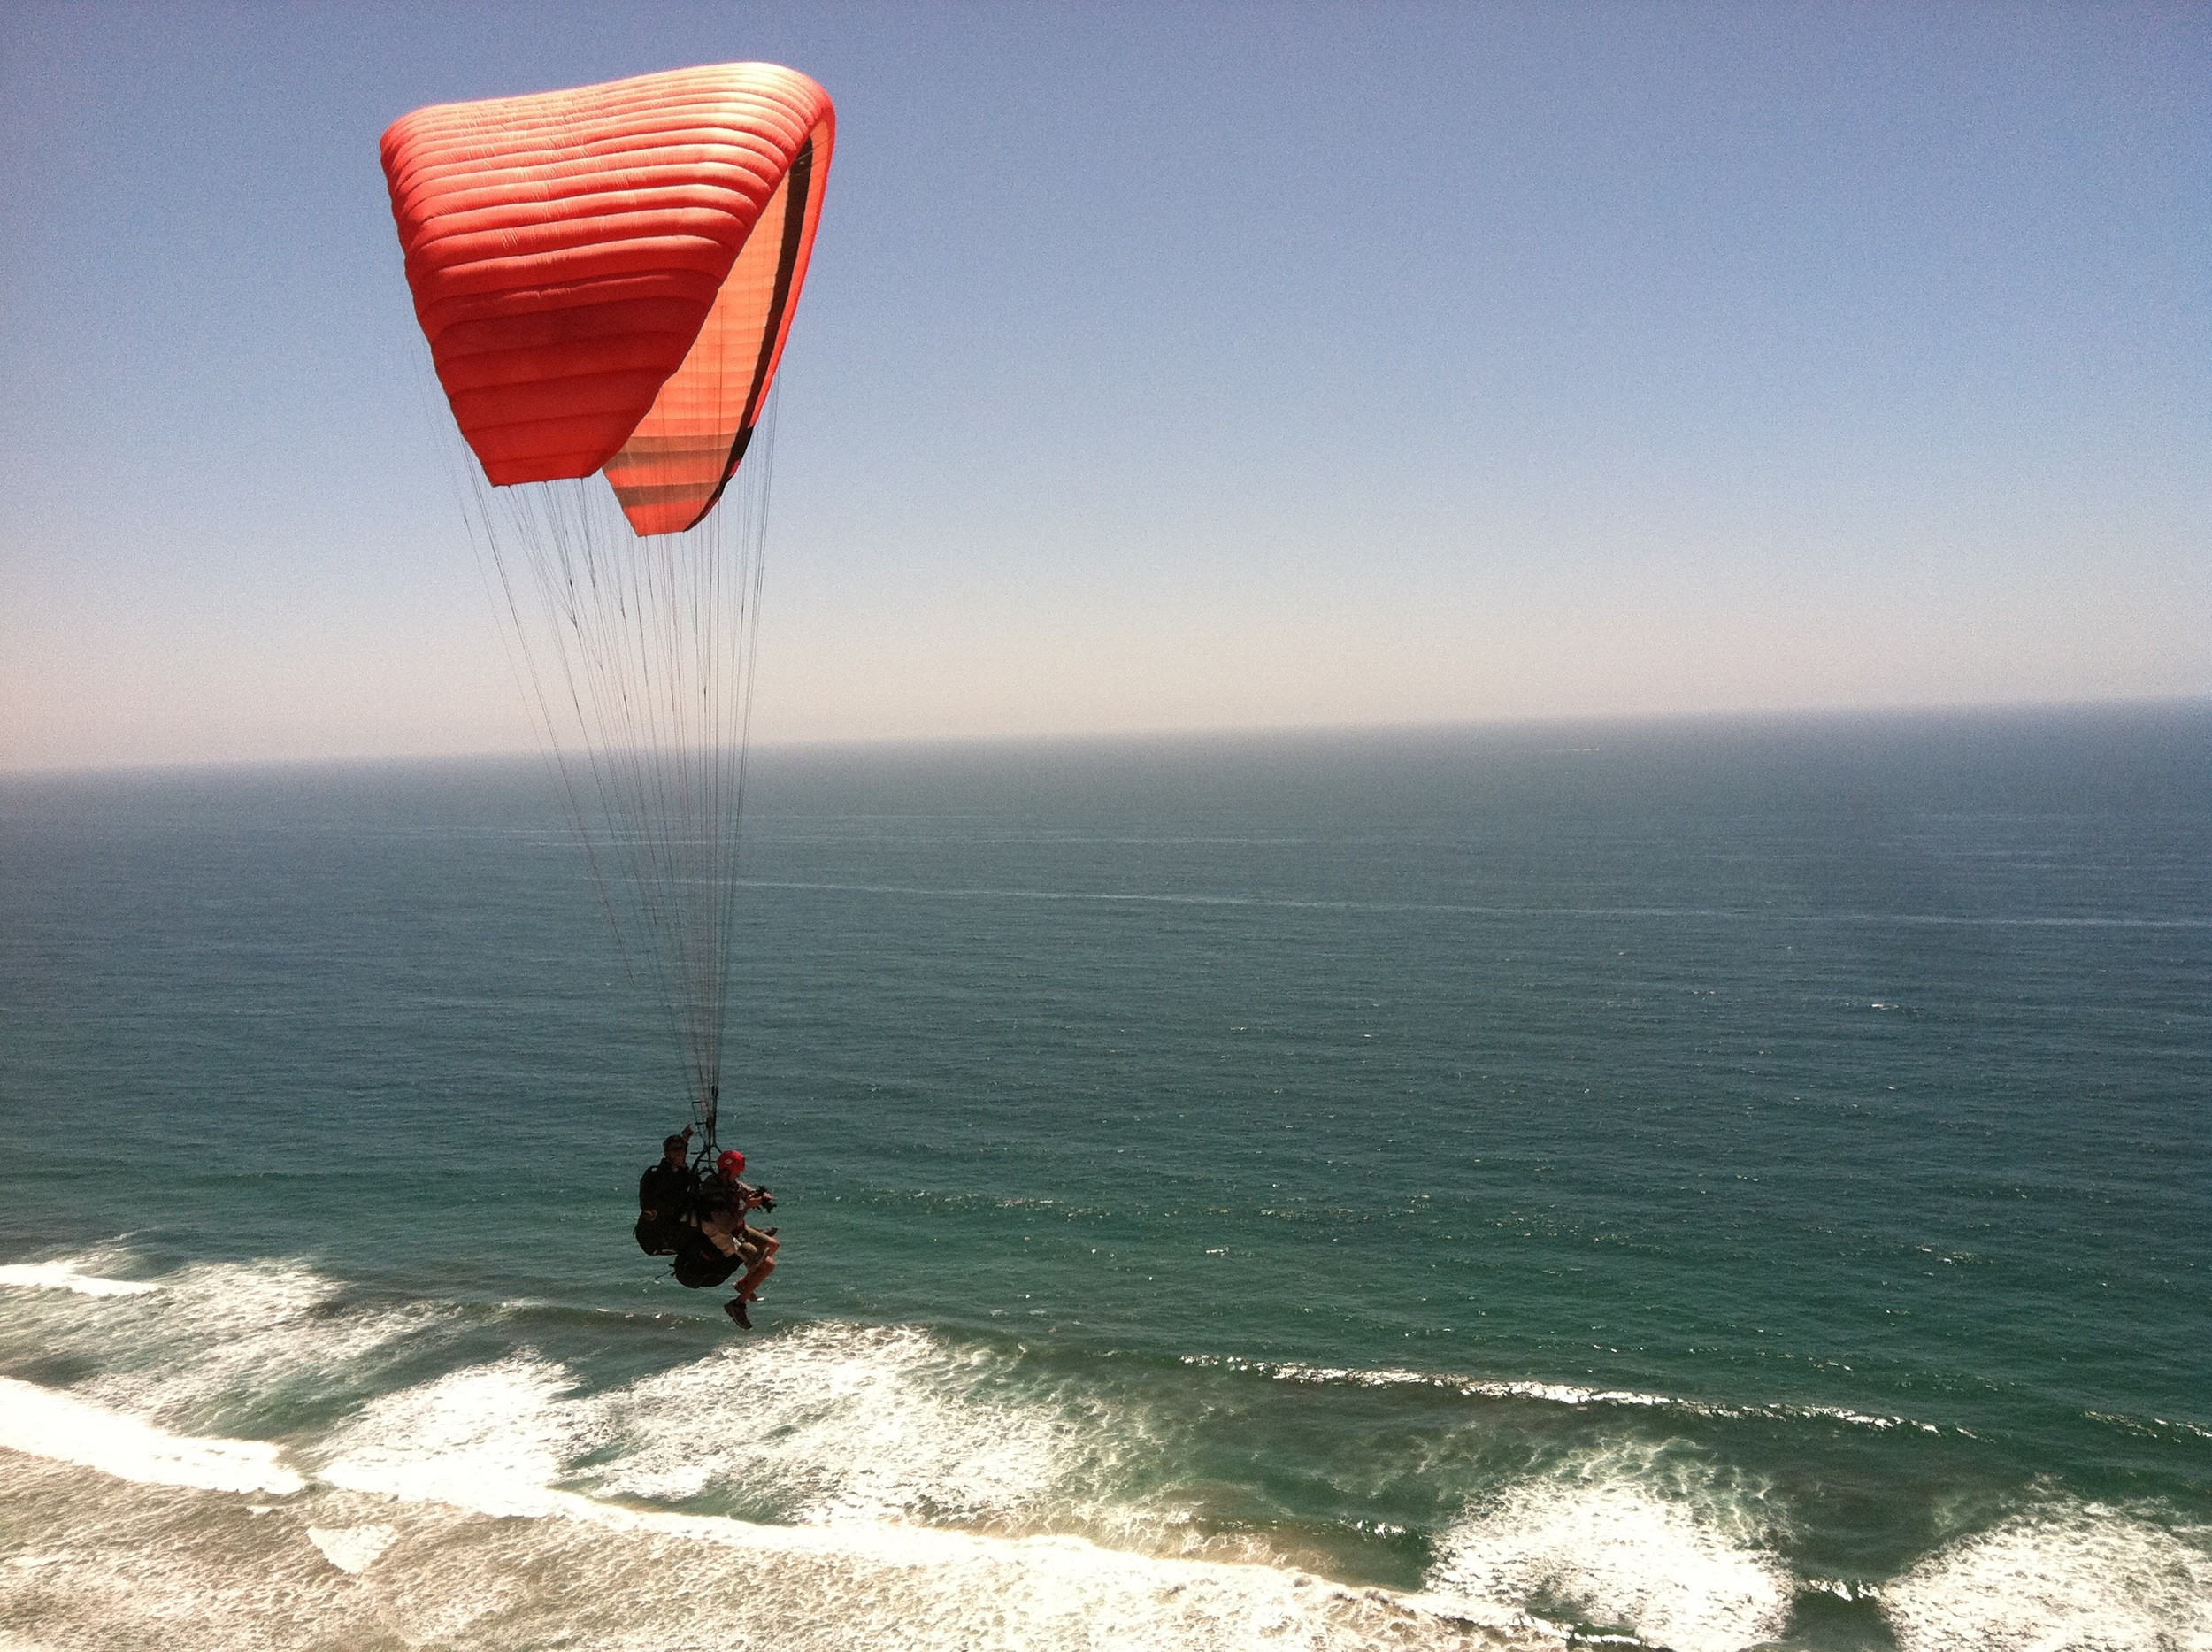 Paragliding off the Southern California coast